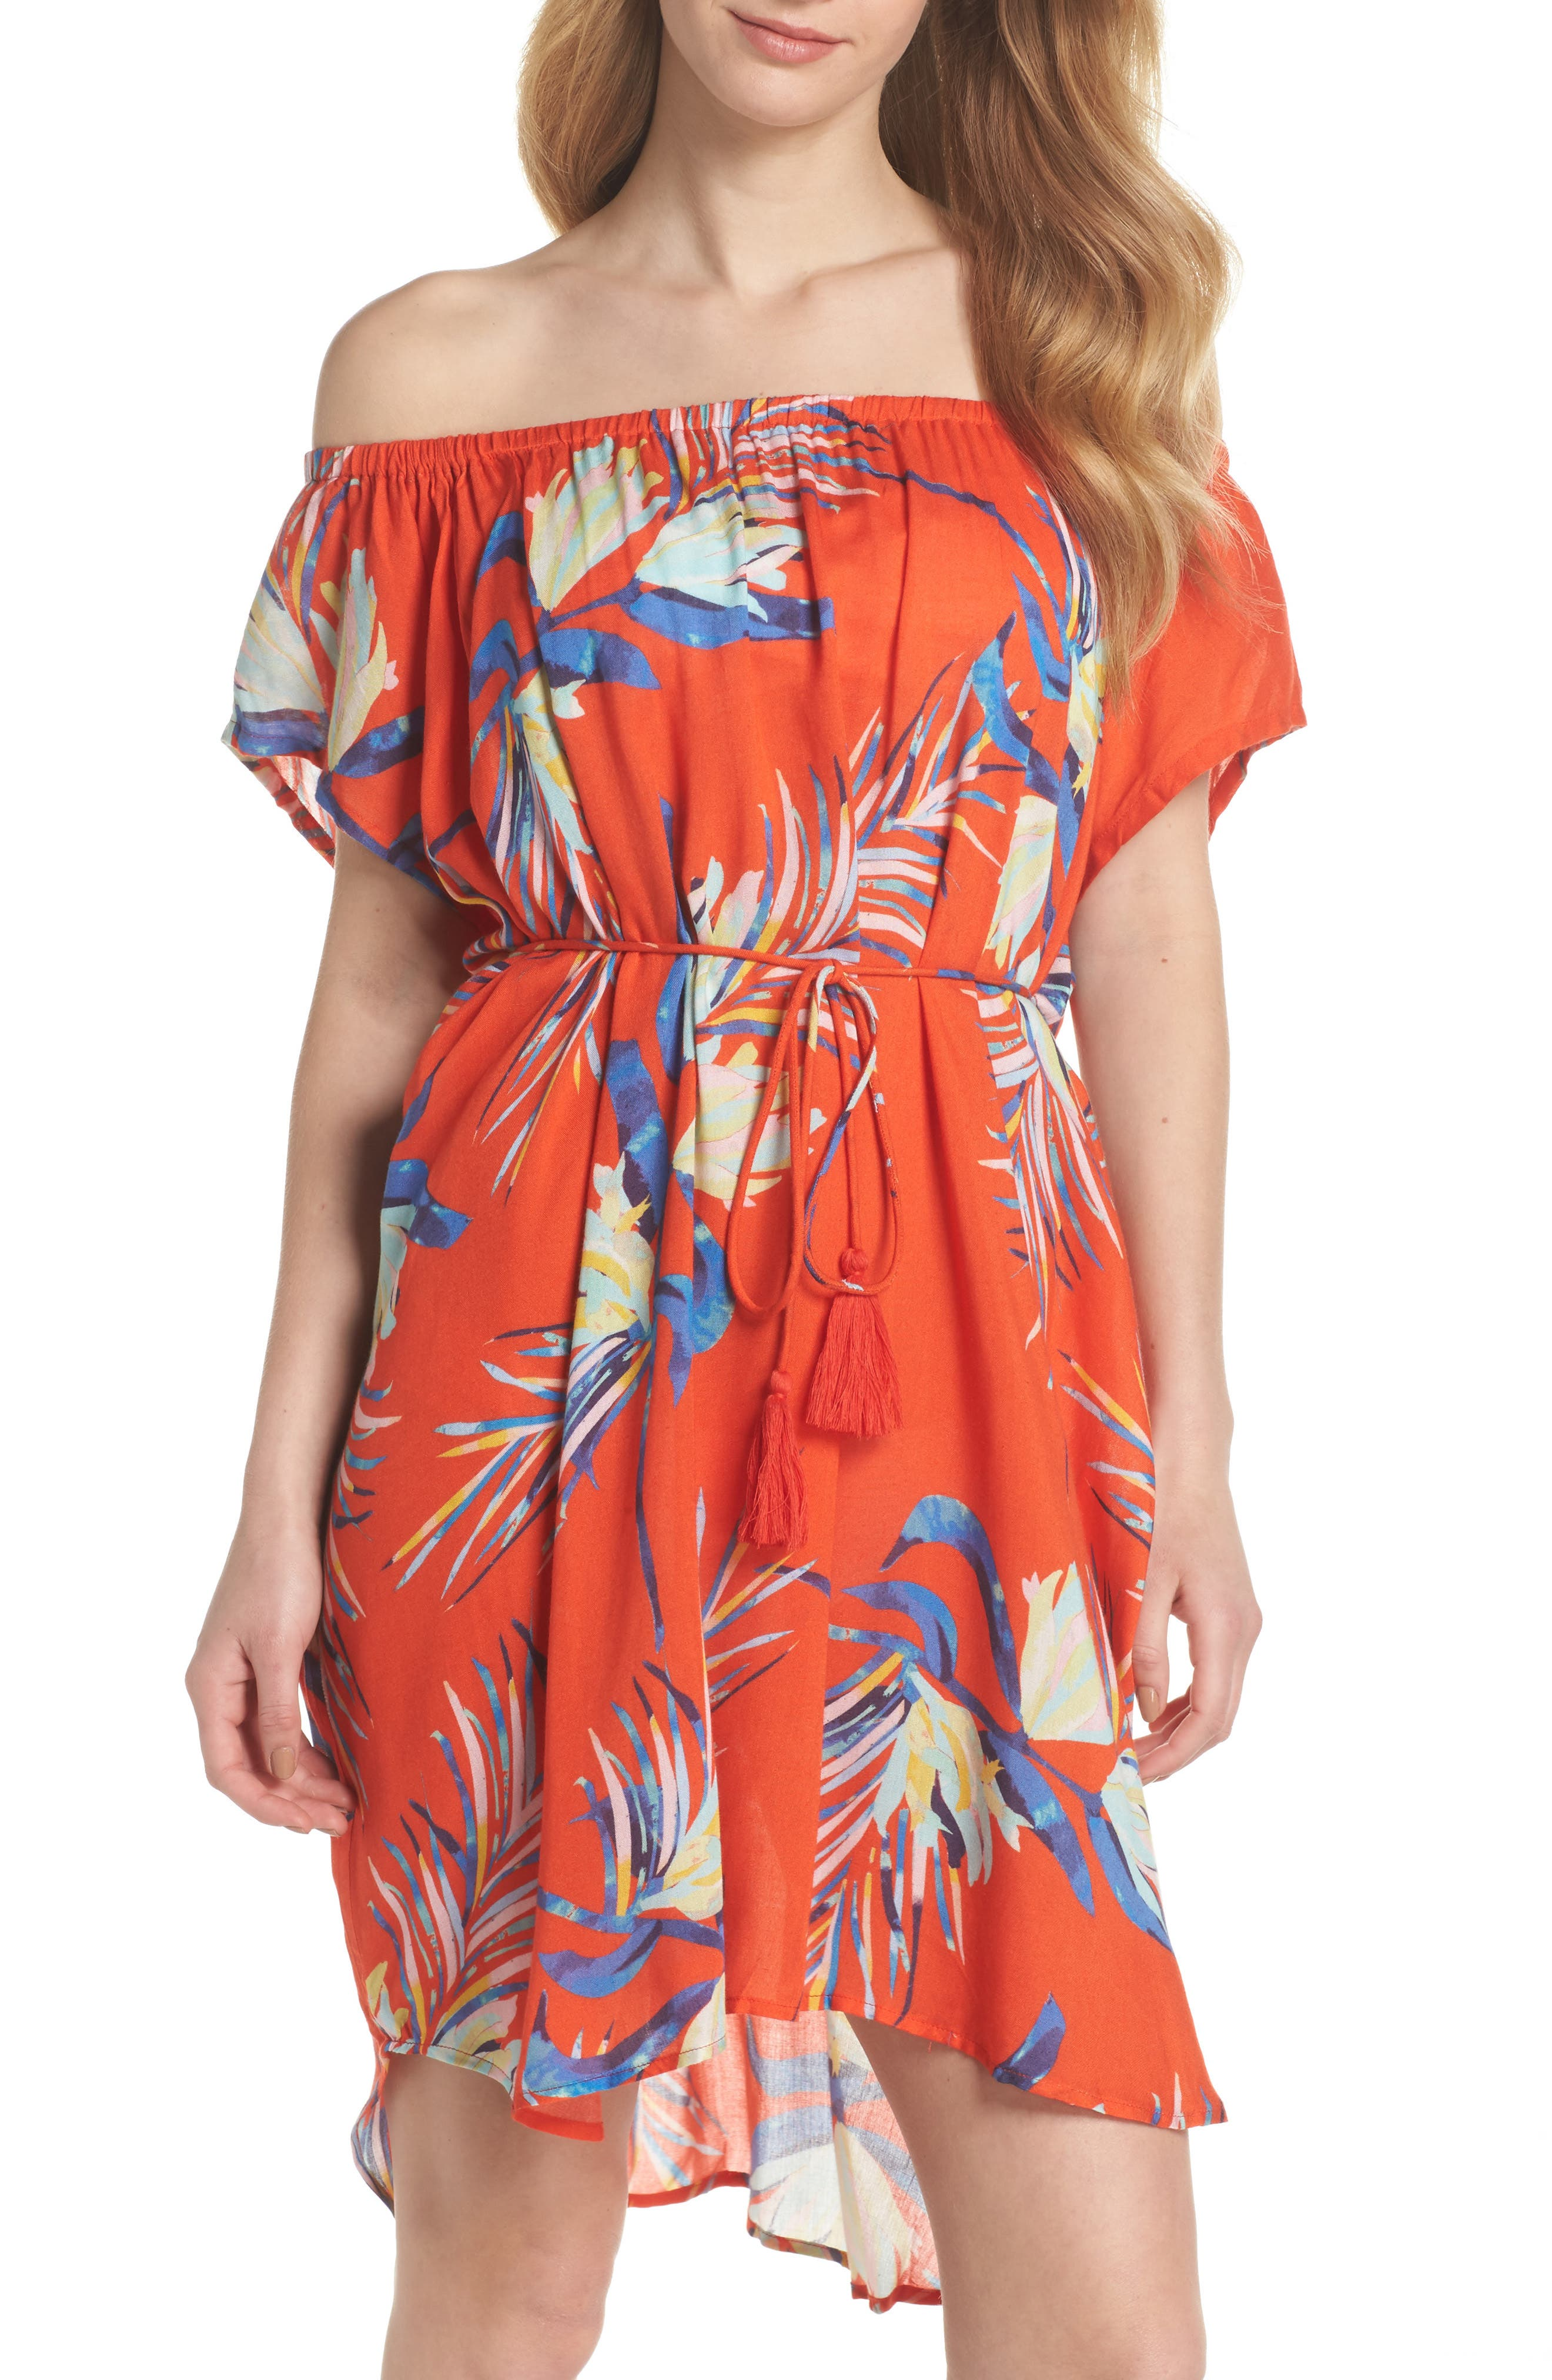 Paradise Palm Off the Shoulder Cover-Up Dress,                             Main thumbnail 1, color,                             Tangerine